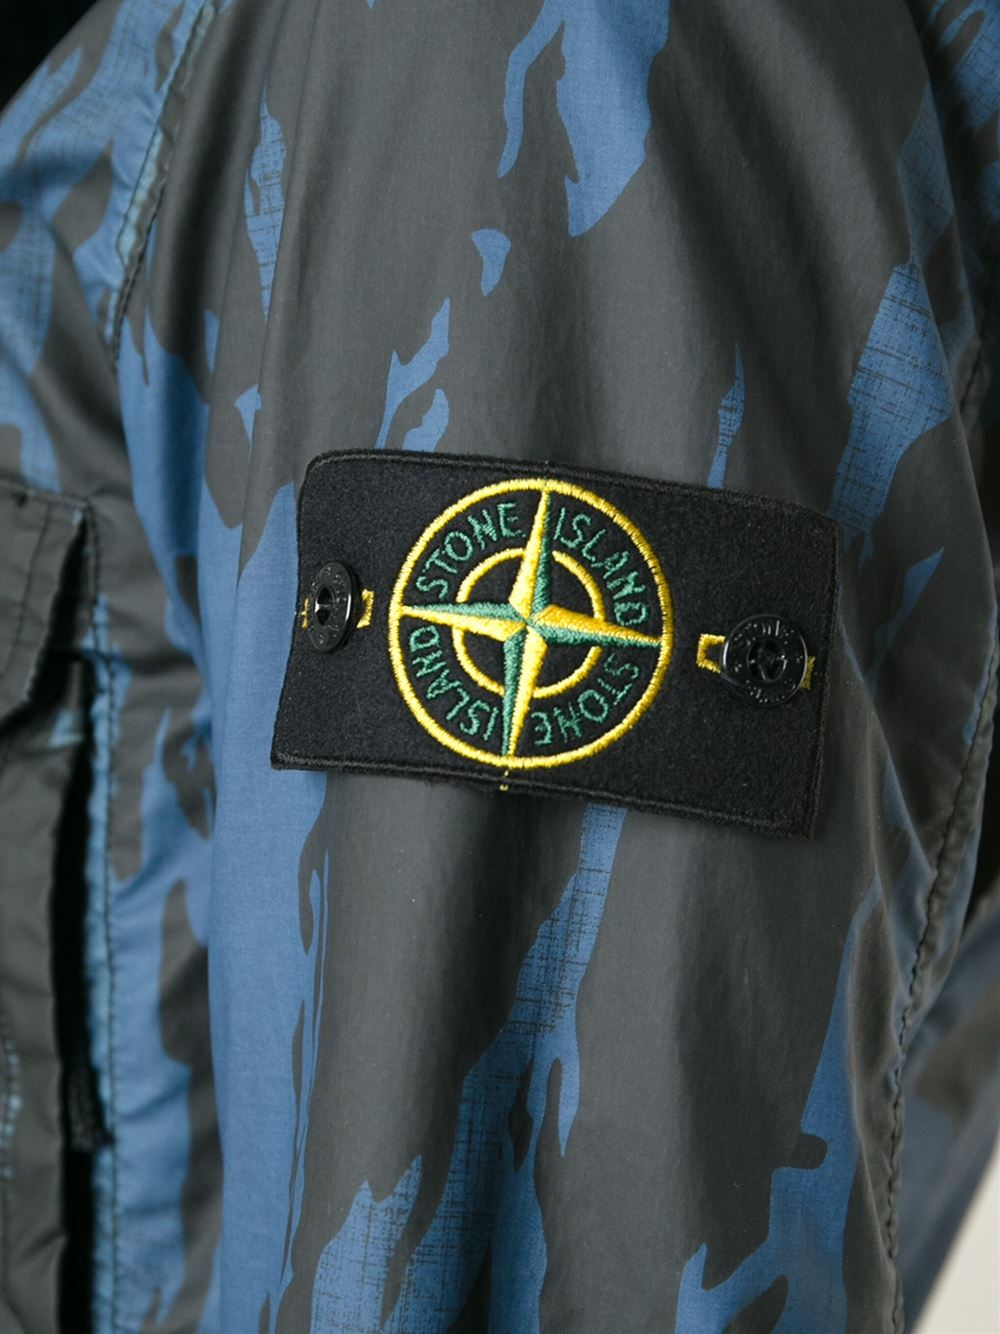 Stone Island Camouflage Print Jacket in Blue for Men - Lyst